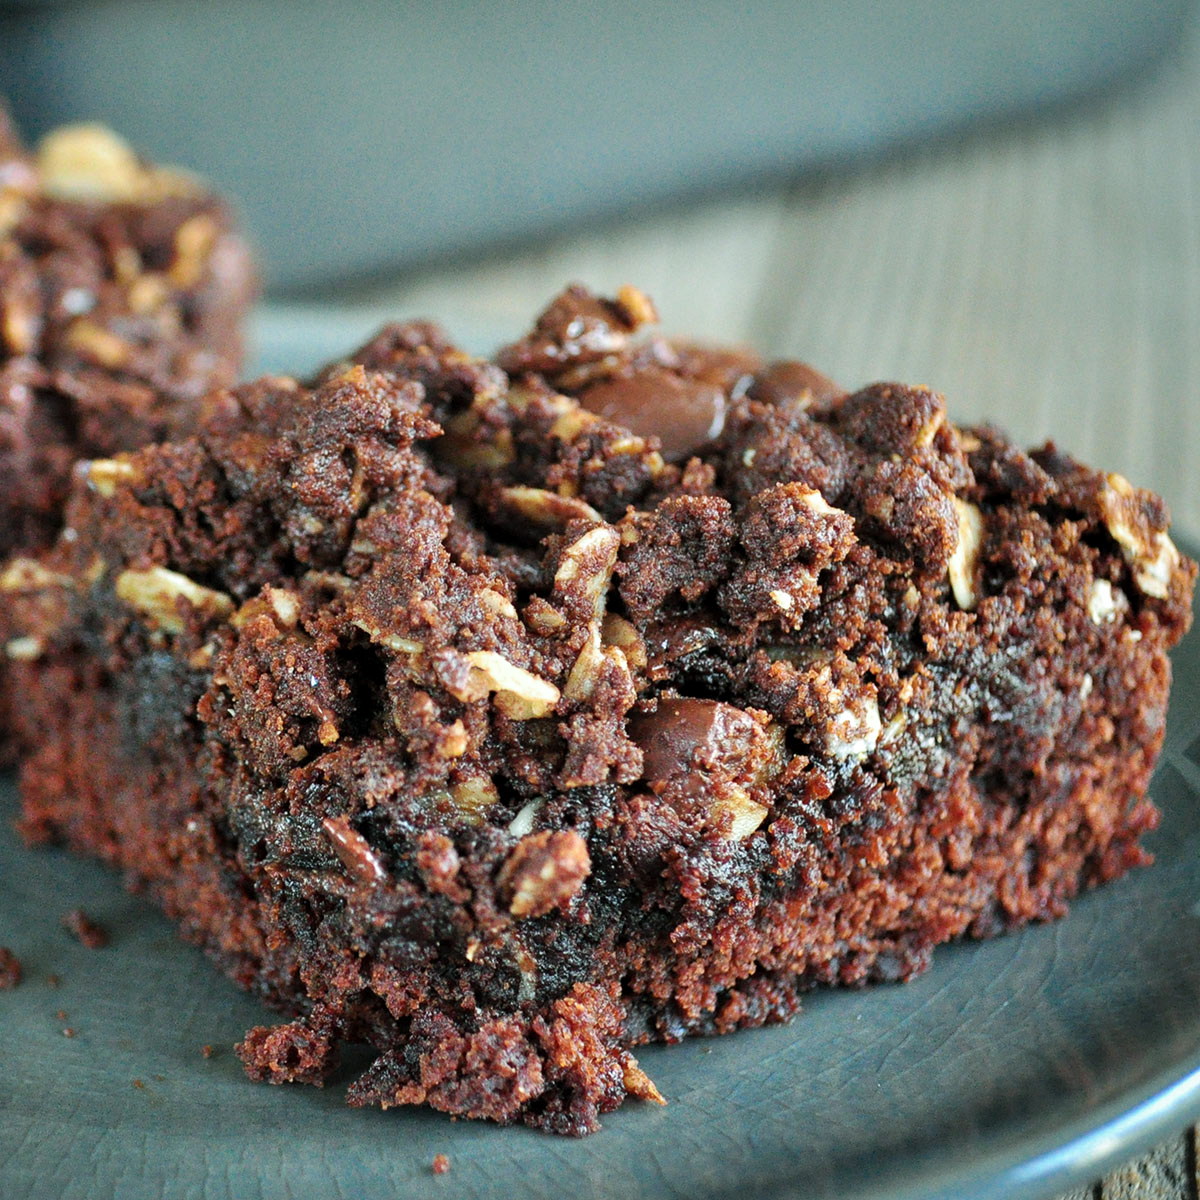 chocolate brownie with crumb topping on a gray plate